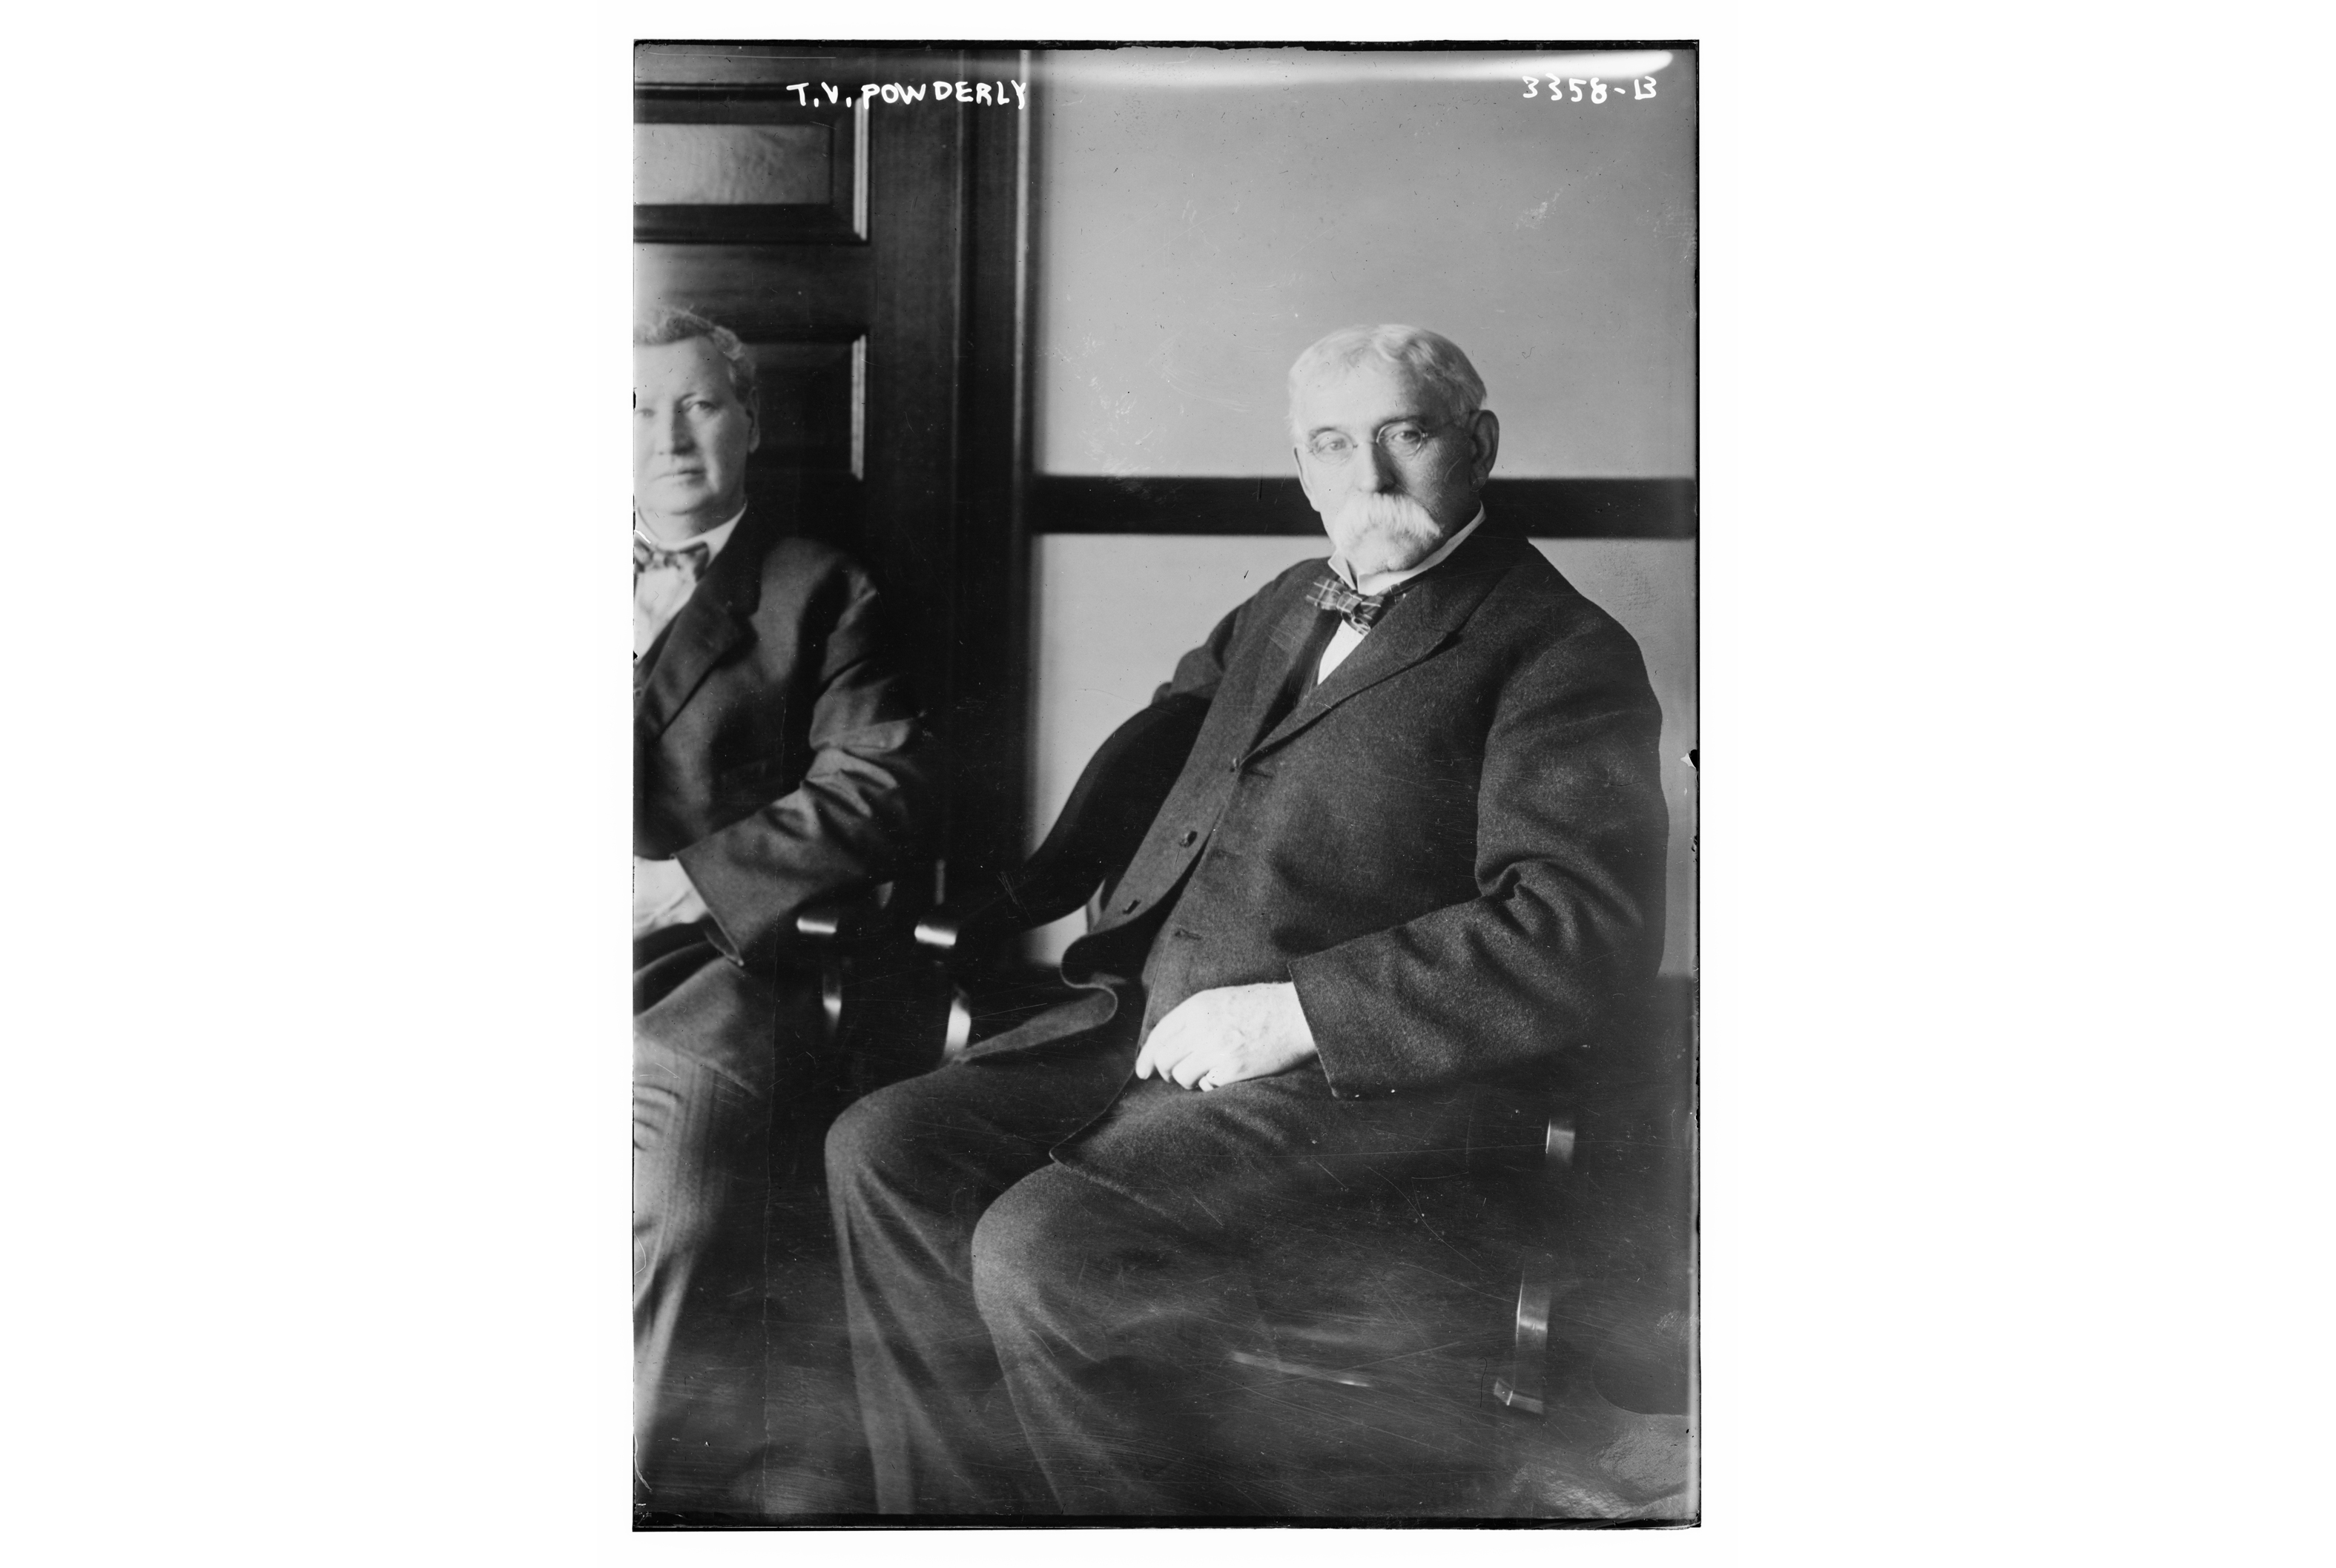 Terence V.  Powderly (1849-1924) who served as a labor union leader of the Knights of Labor  and later as Chief  Information Officer  for the U.S. Bureau of  Information from 1907 to 1921.